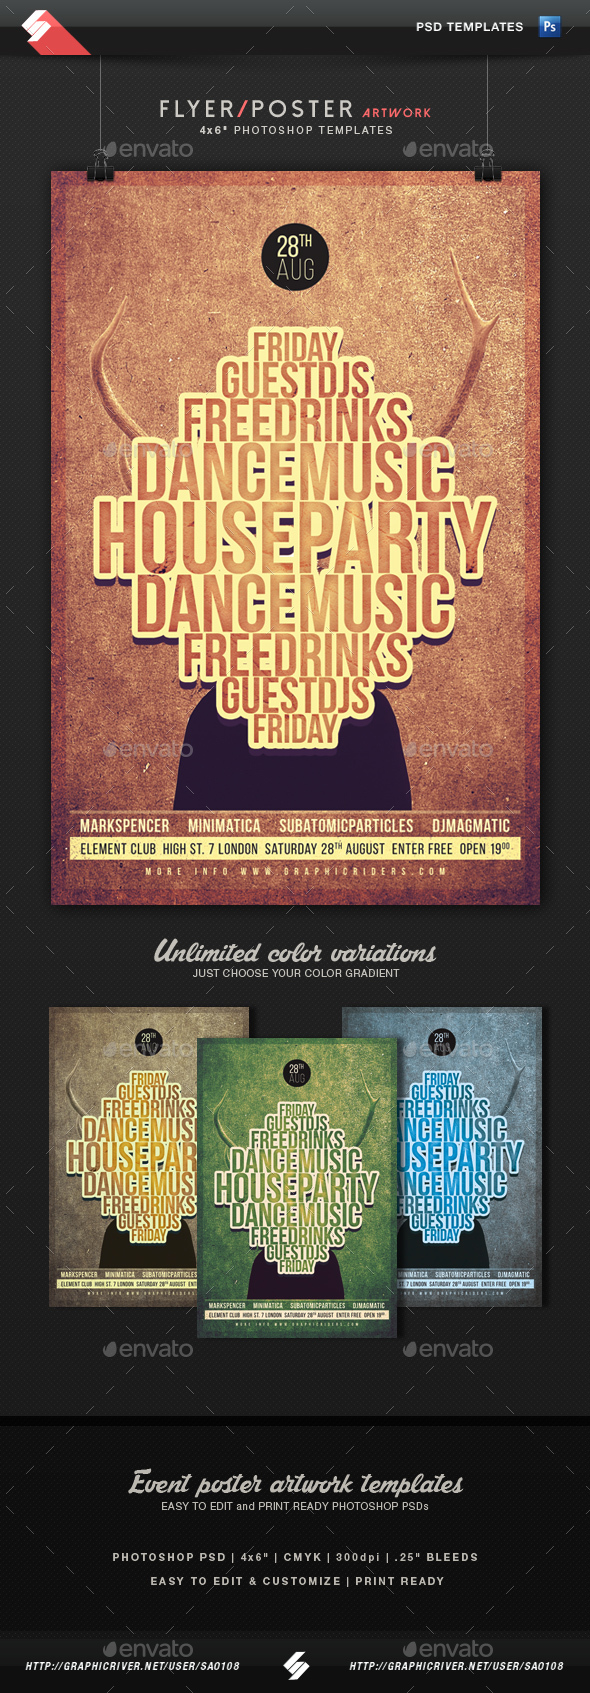 House Music 2 - Party Flyer Artwork Template - Clubs & Parties Events